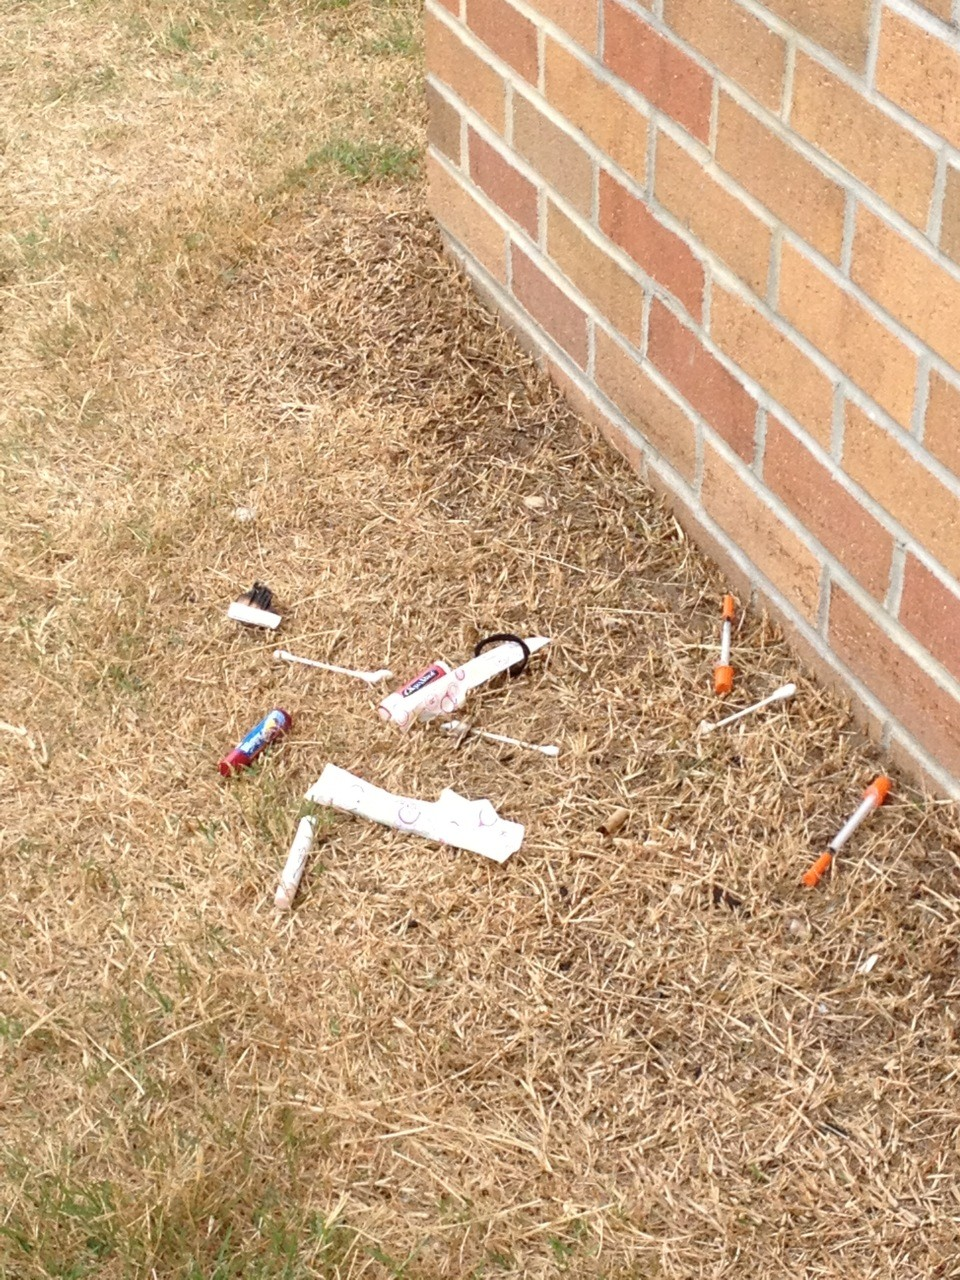 The South Merrick Community Civic Association provided the Herald Life with this photograph, which appears to show needles on the ground outside Levy-Lakeside School along with other items, including a tampon and cotton swabs, which drug users sometimes use to inject intravenous drugs.